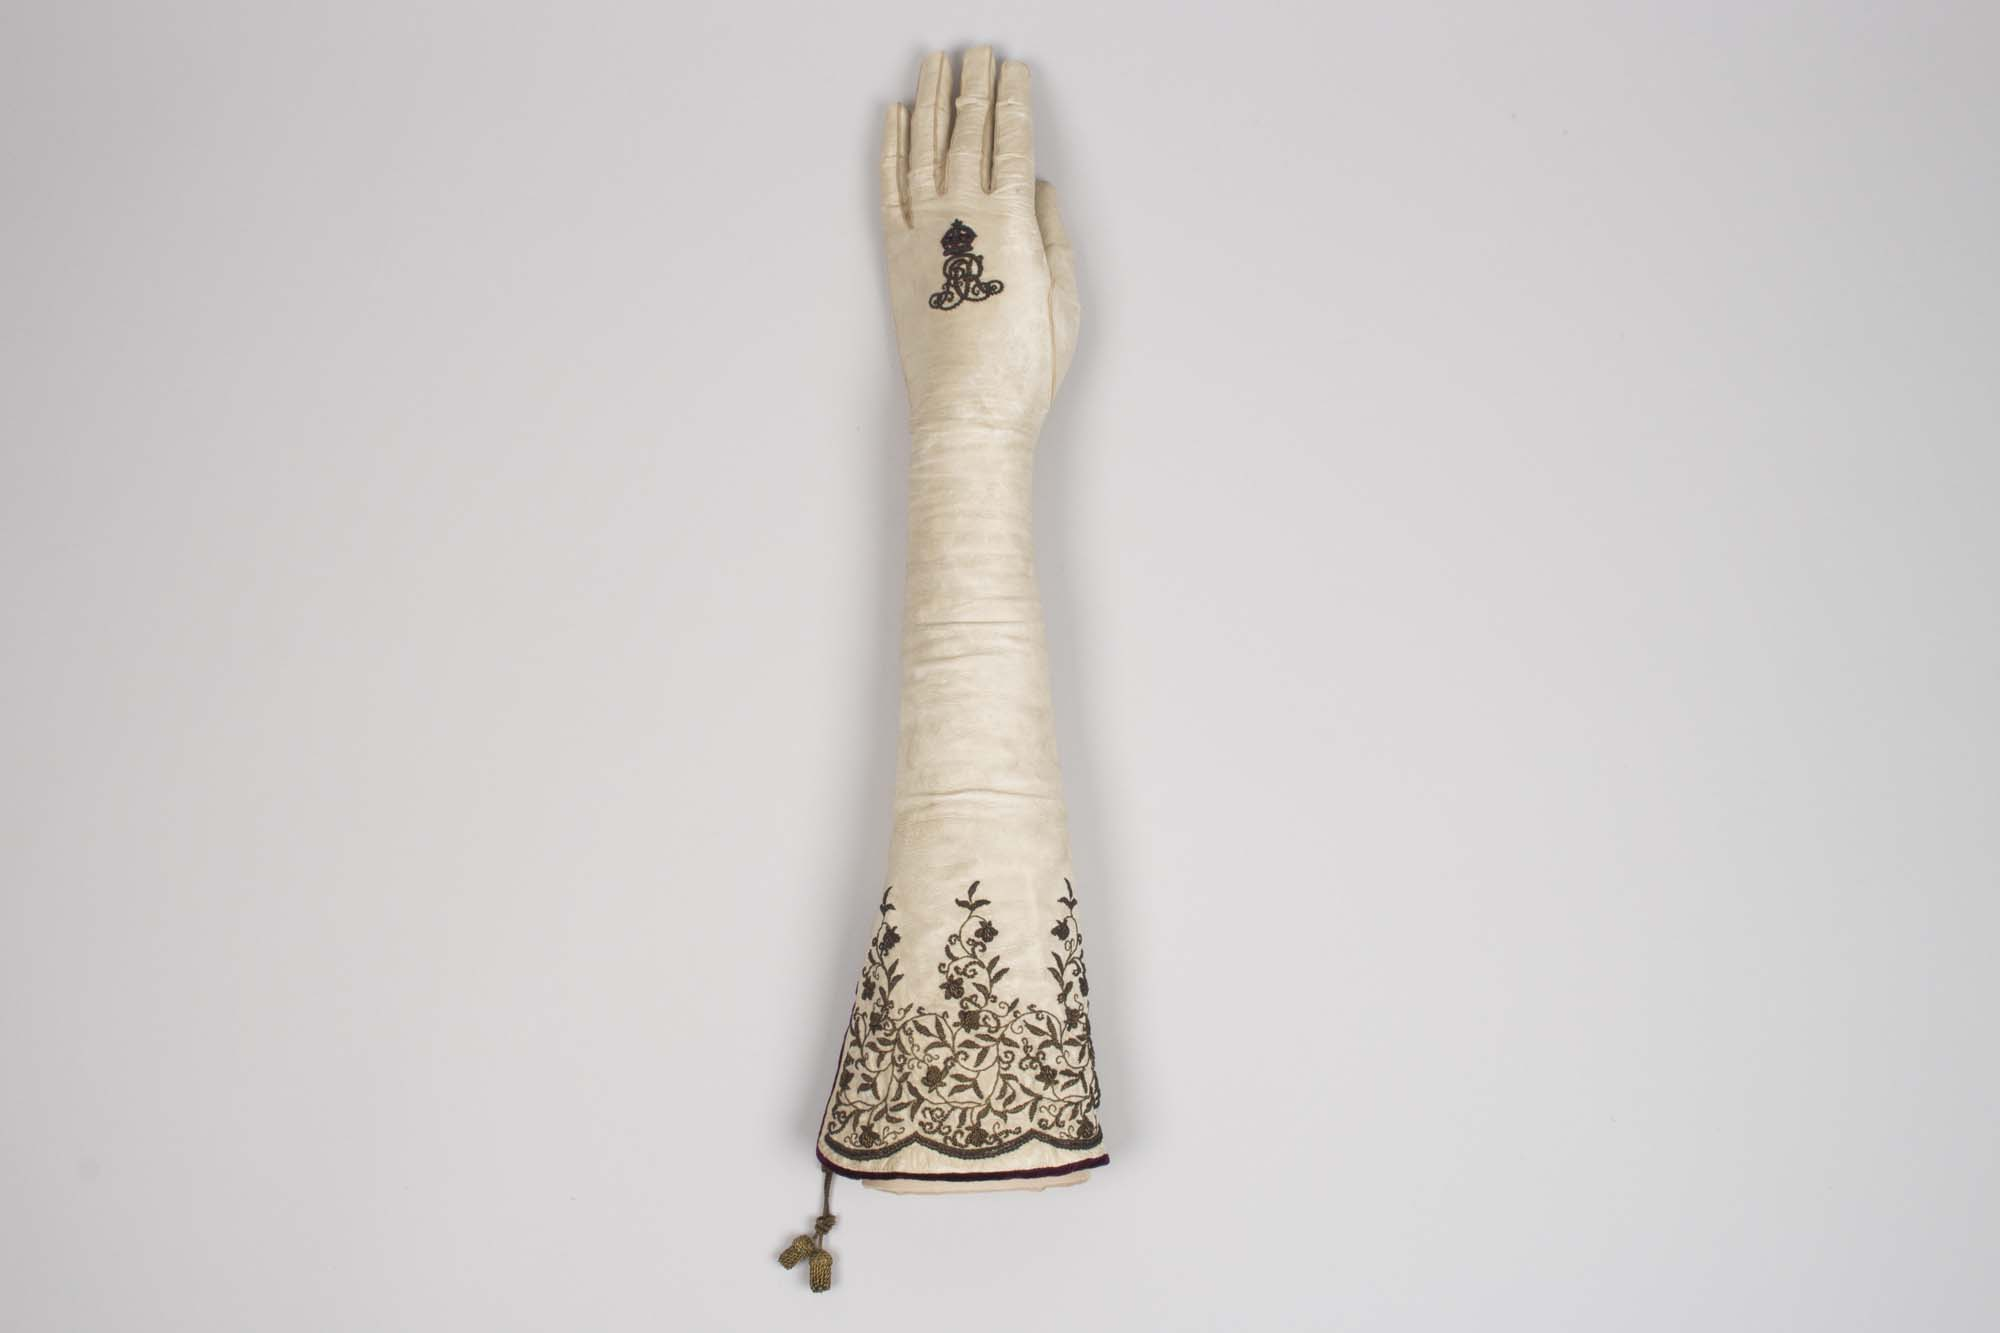 a photo of a long cream glove with a royal cipher on the hand